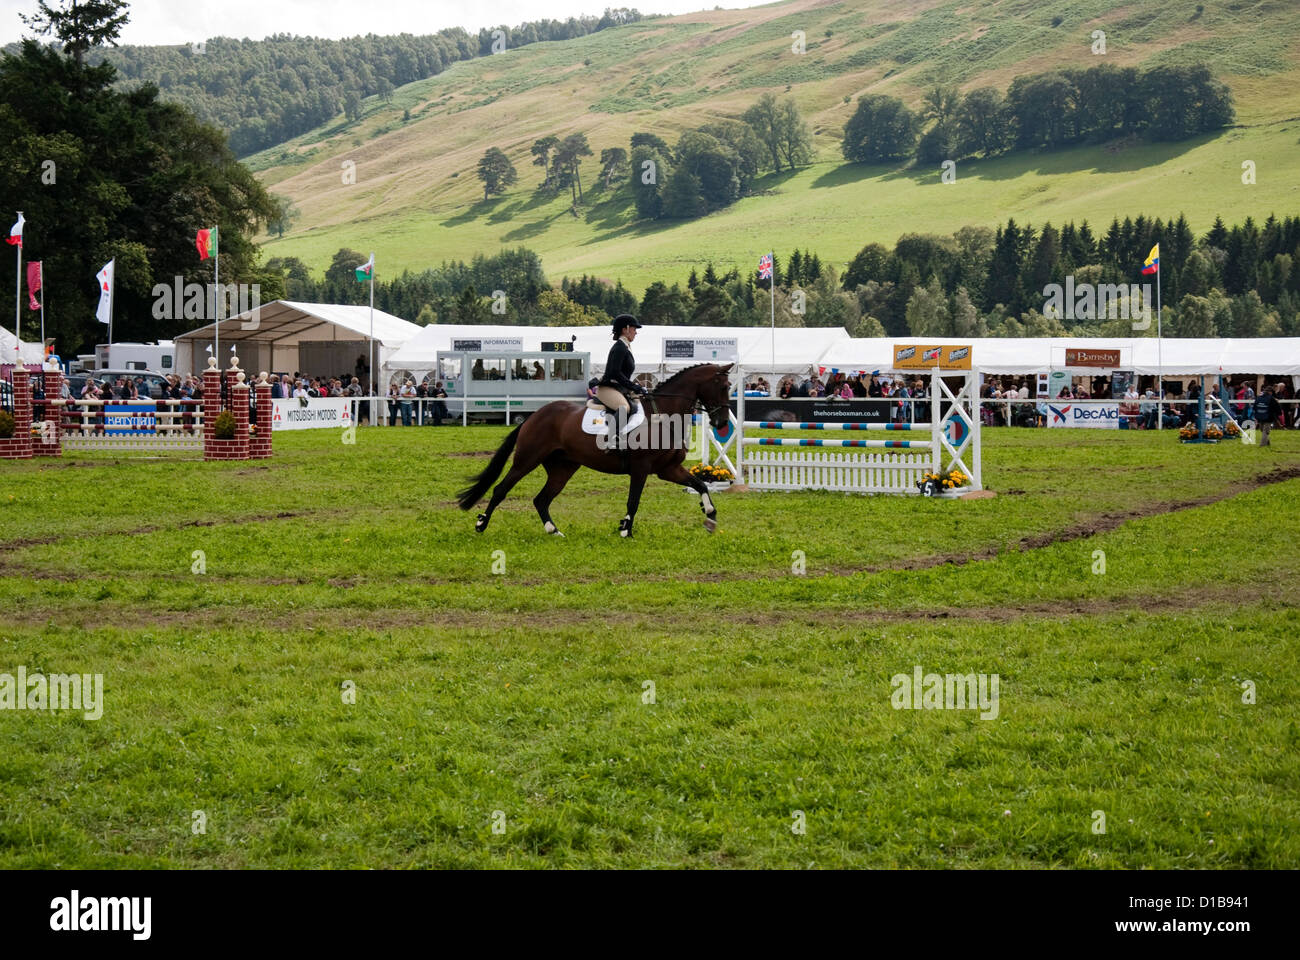 Woman Showjumper on a Chestnut Horse in the Showjumping Arena - Stock Image